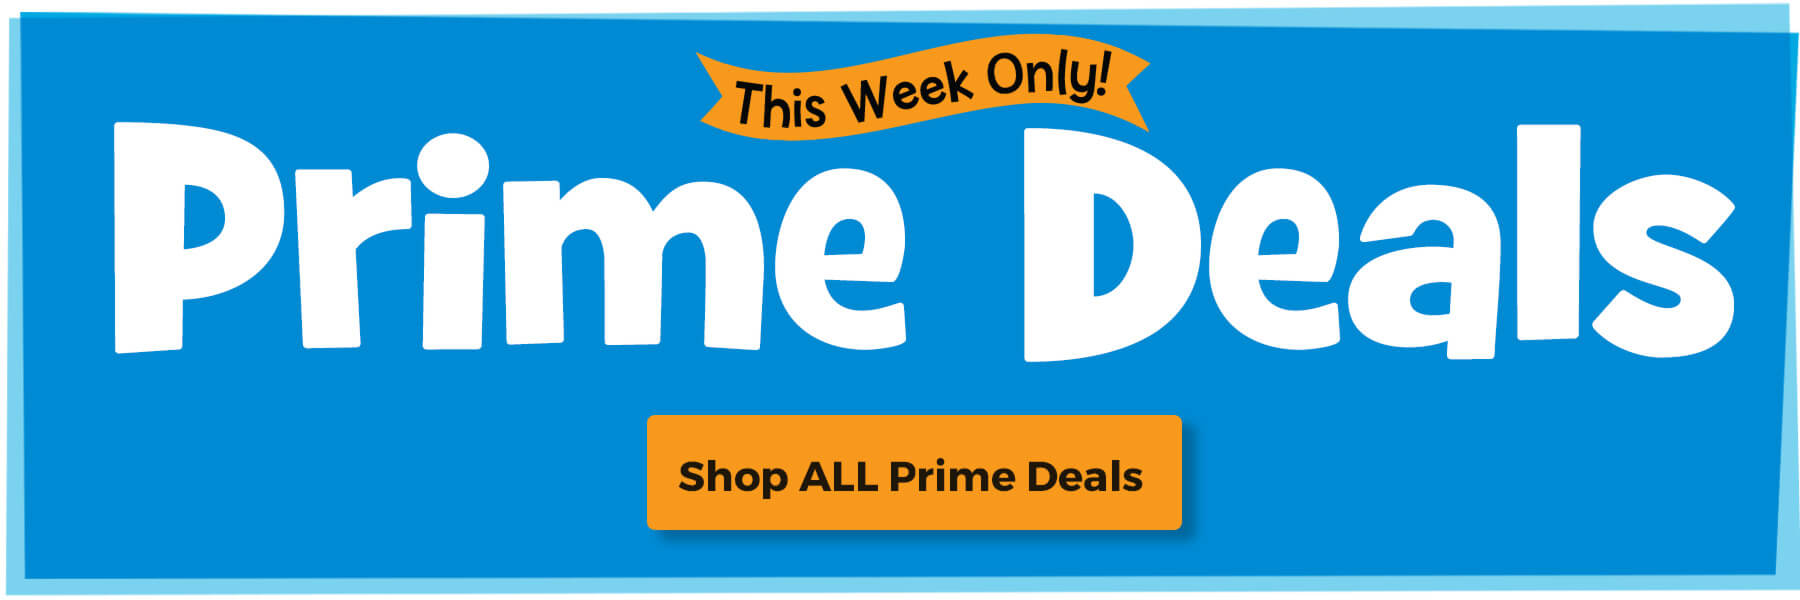 Shop all prime deals this week only